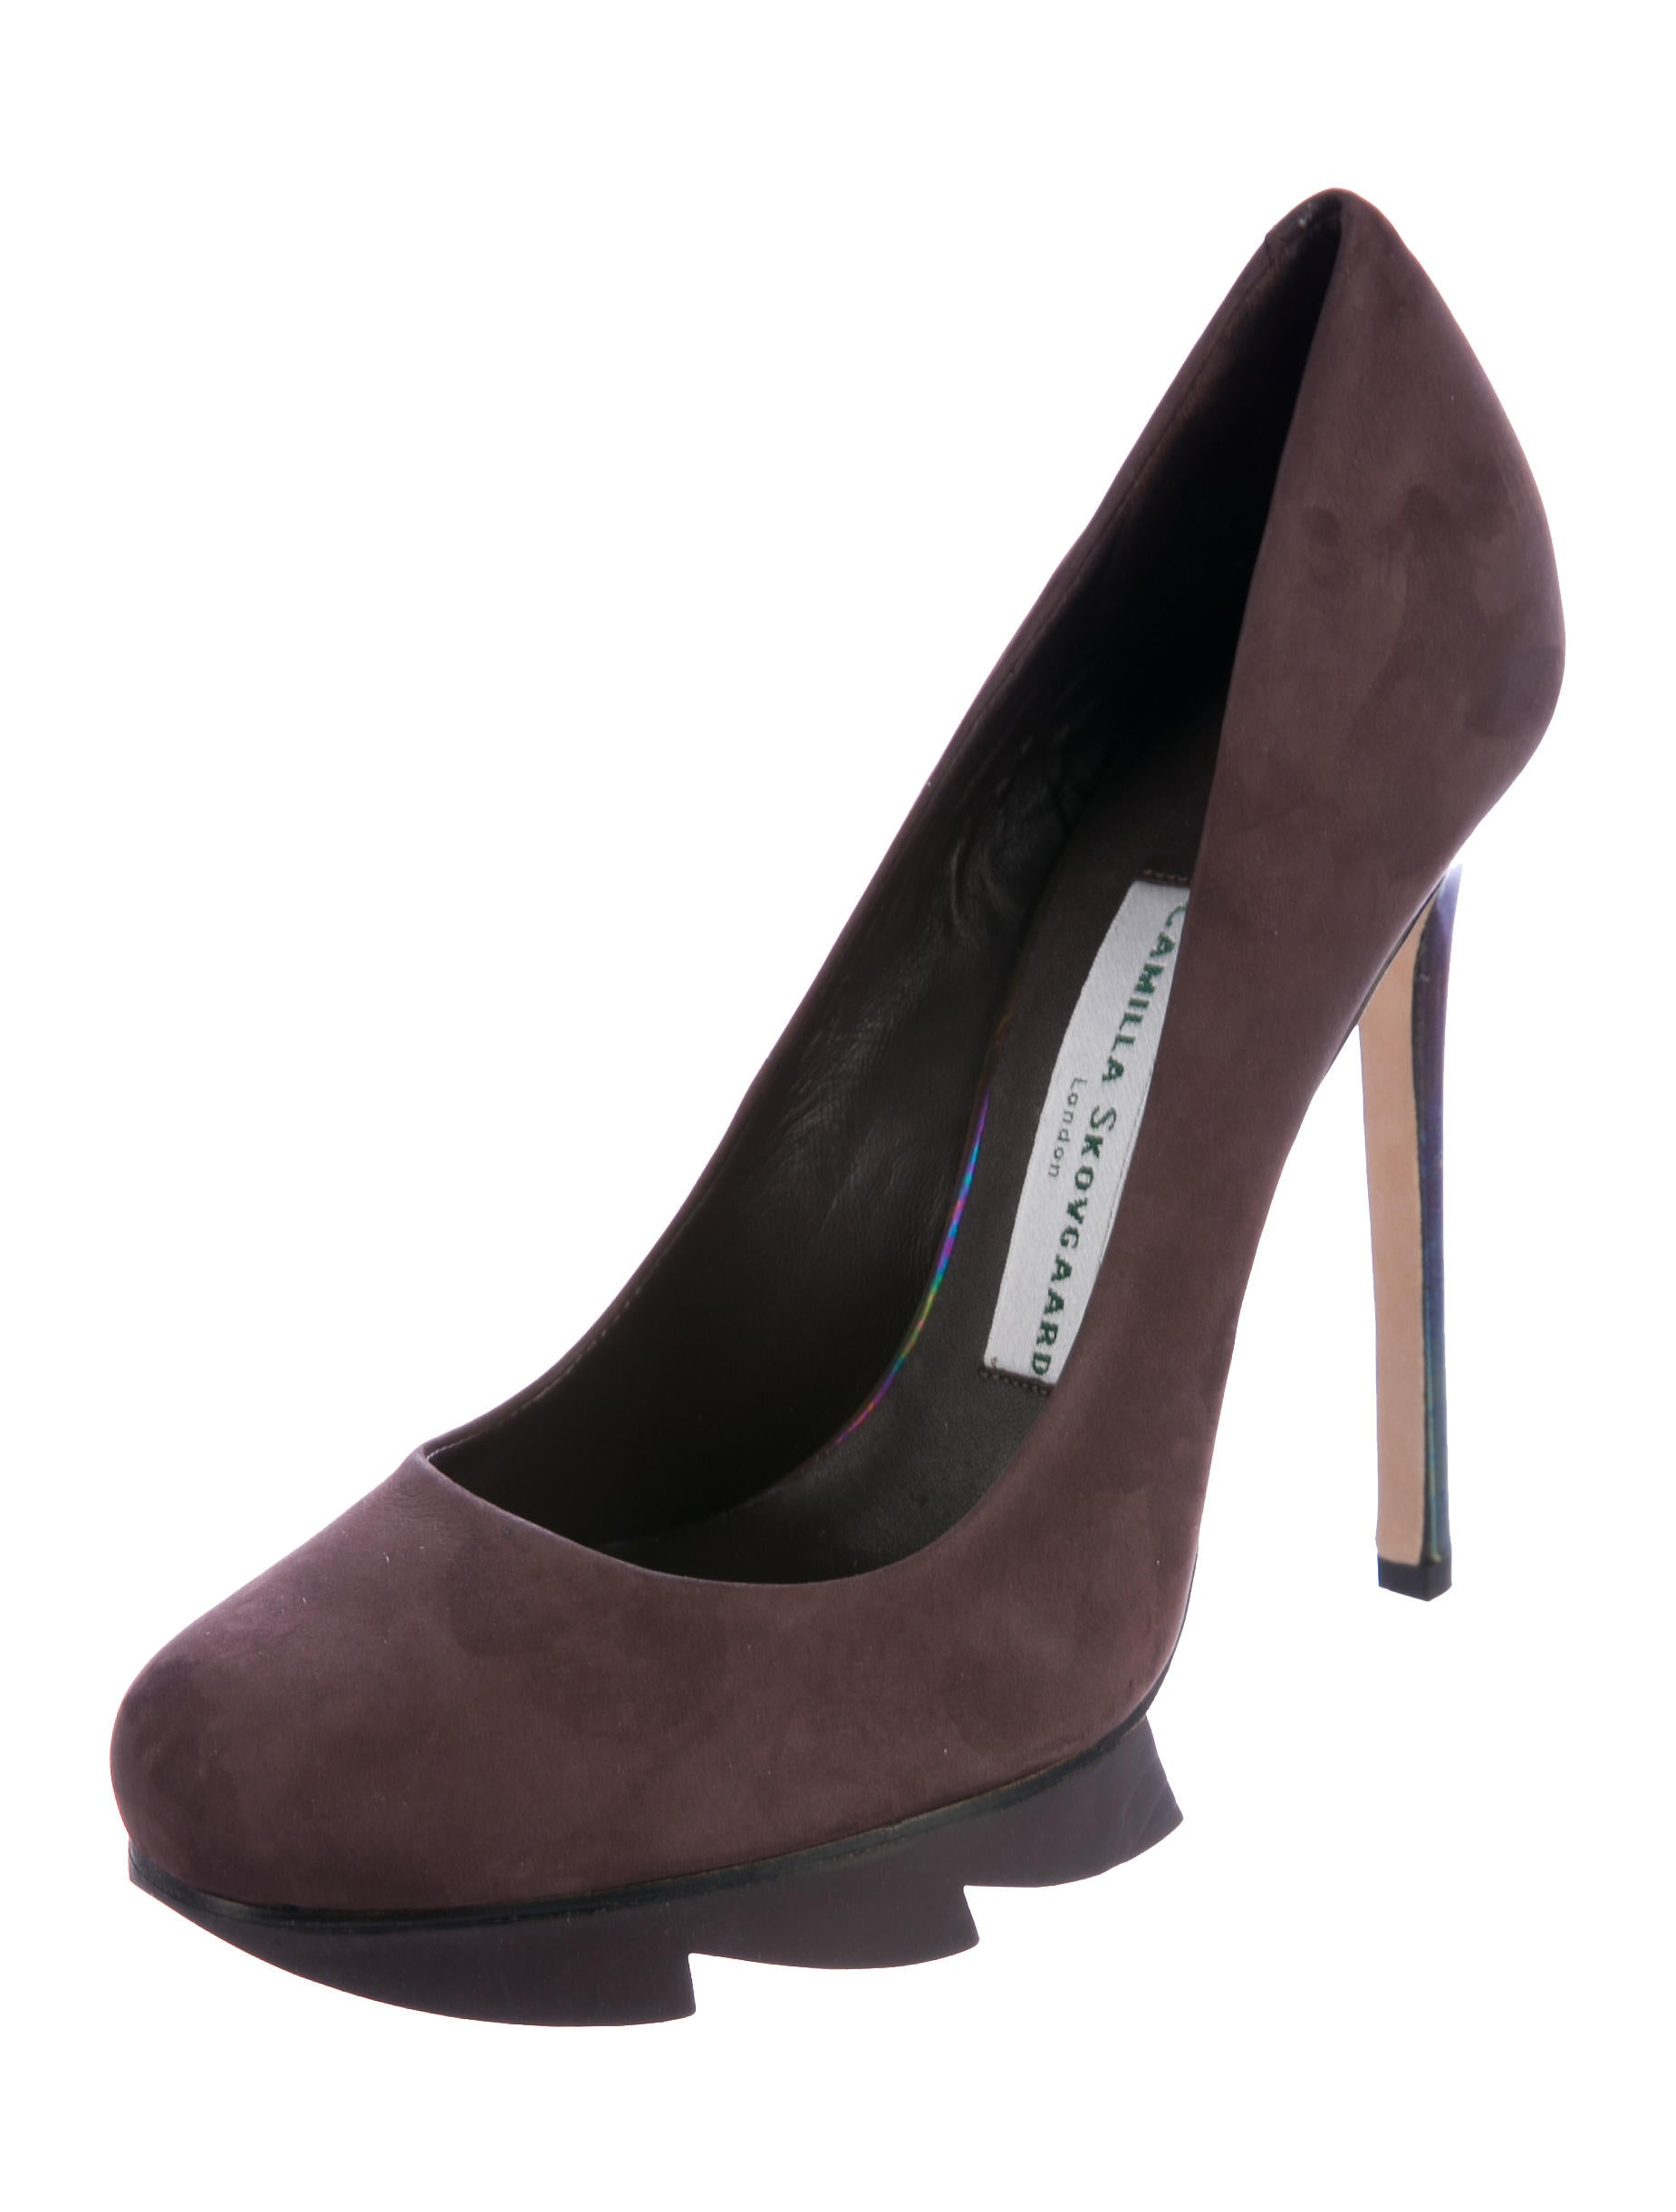 Camilla Skovgaard Suede Platform Pumps w/ Tags fast delivery exclusive sale online cheap with paypal E832gT